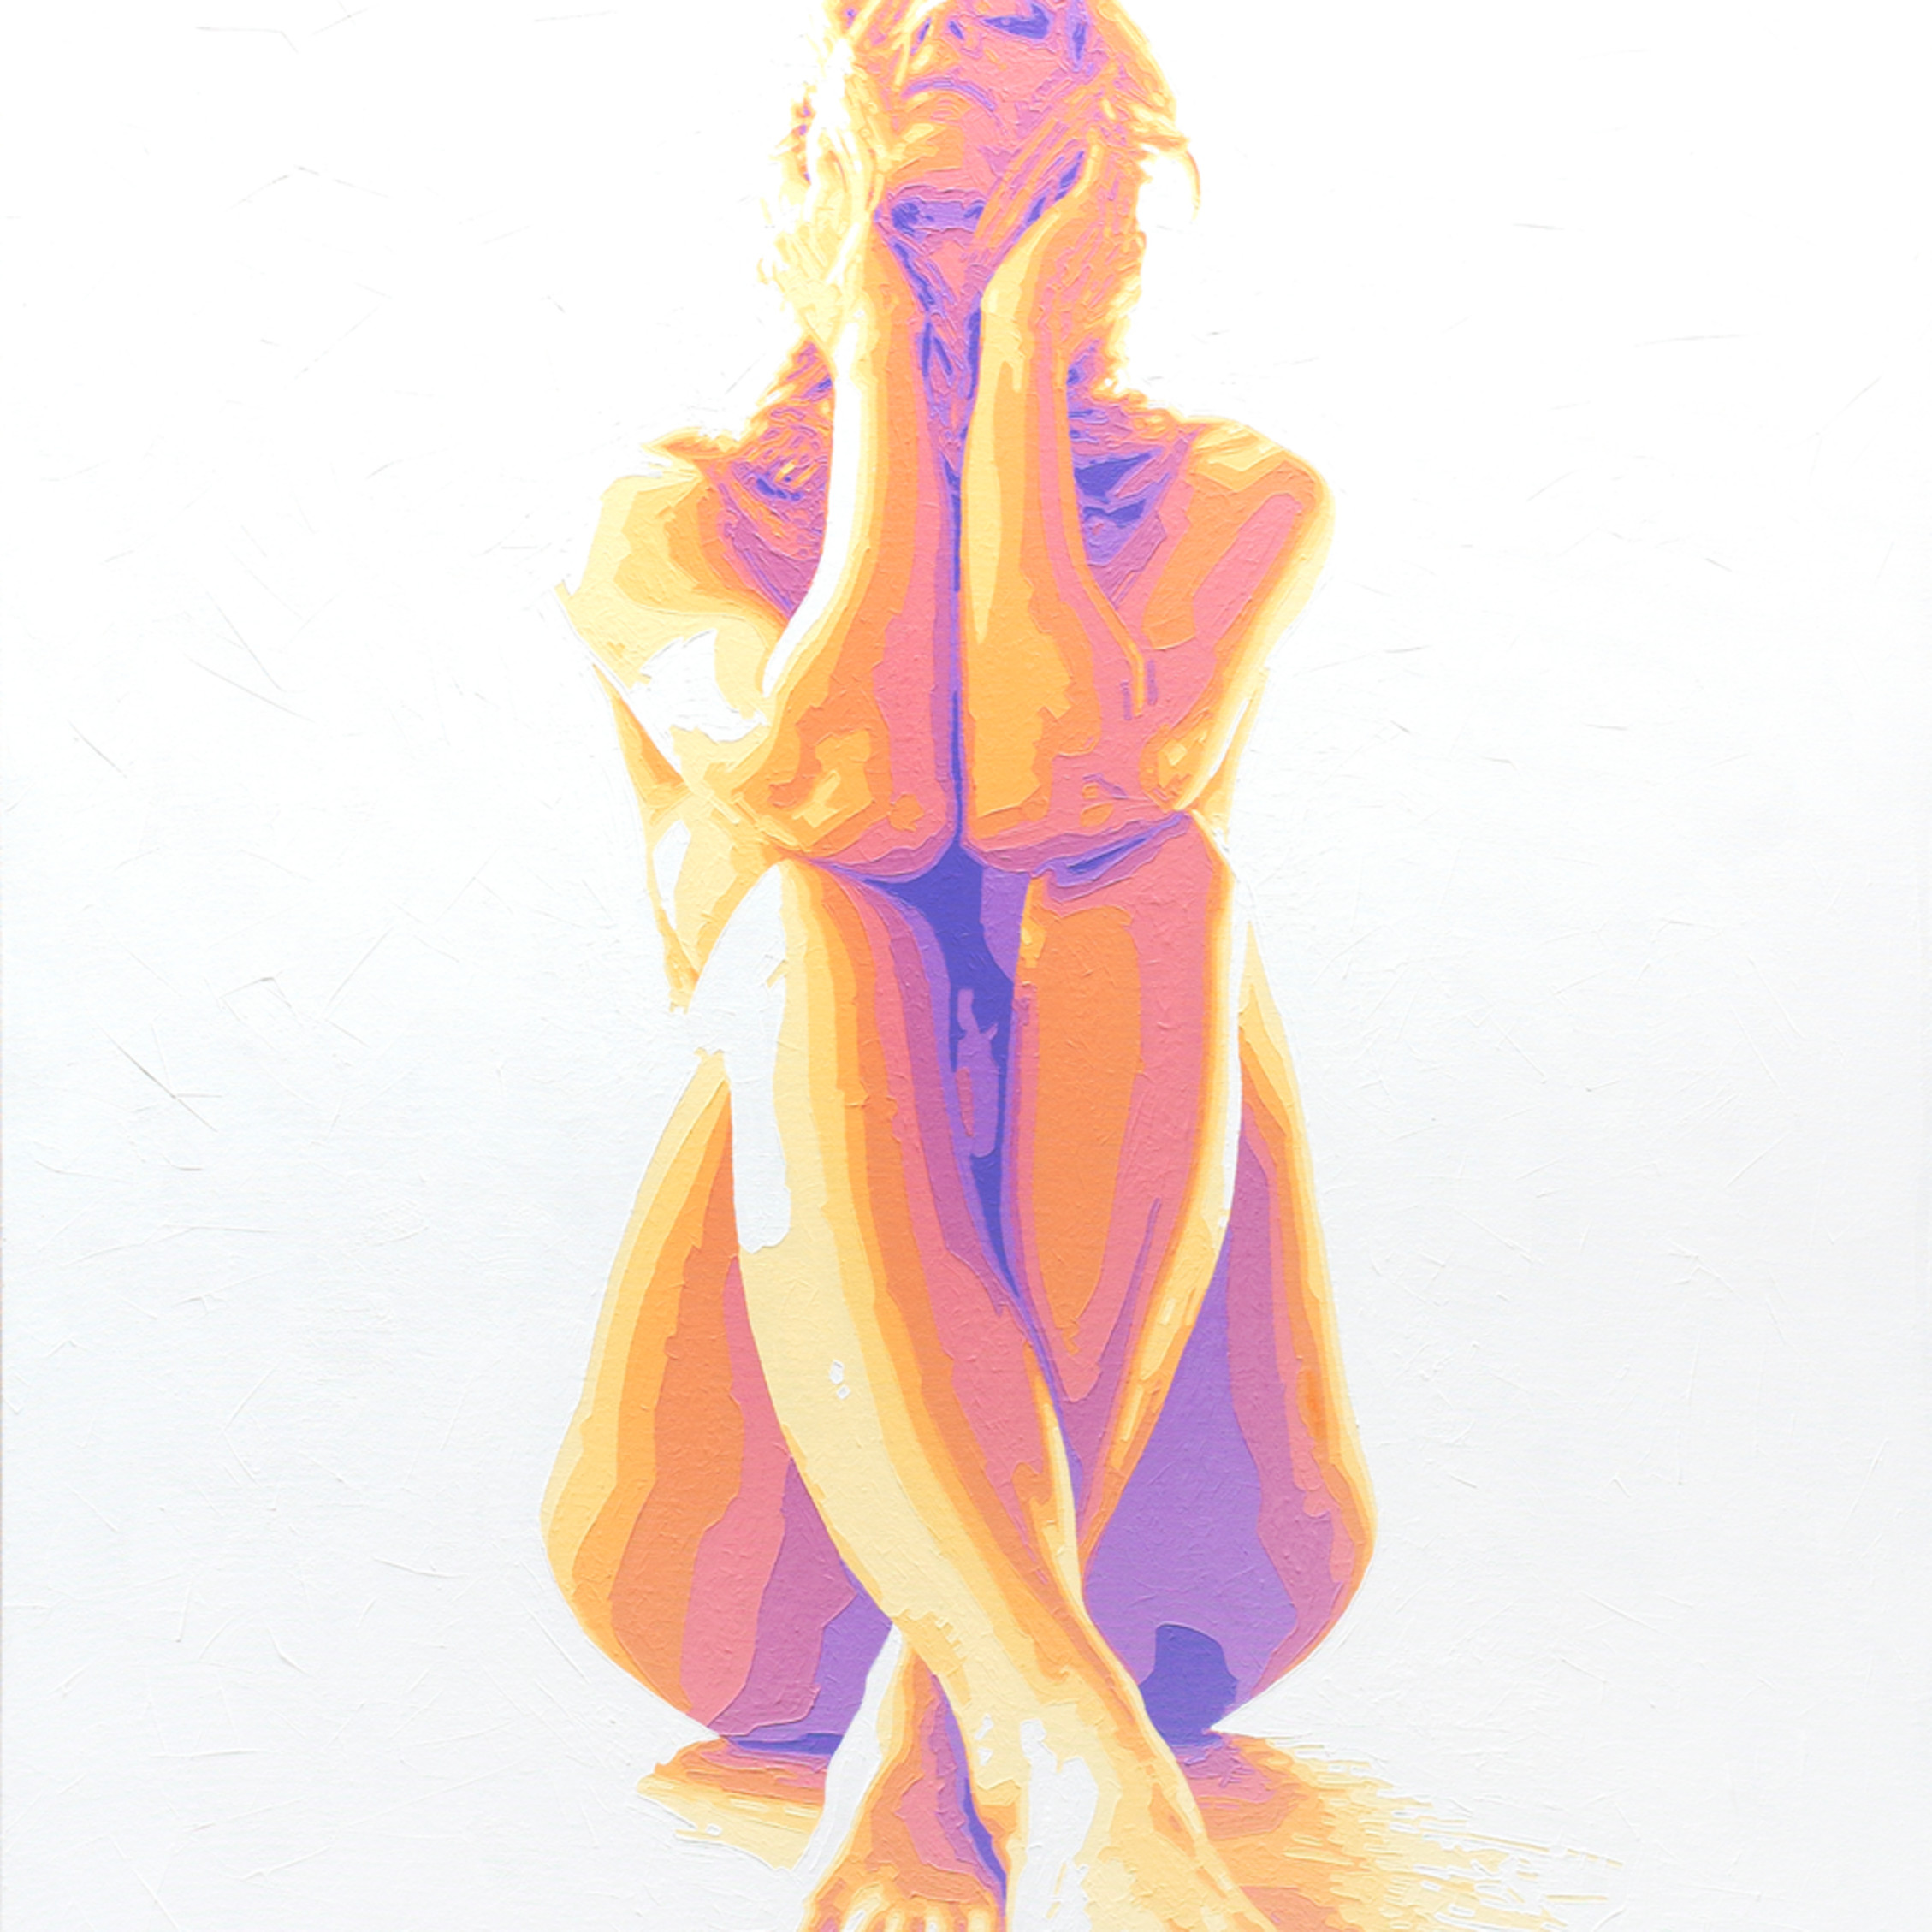 Lust and light 36x48 2016 toddmonk xl yepfno